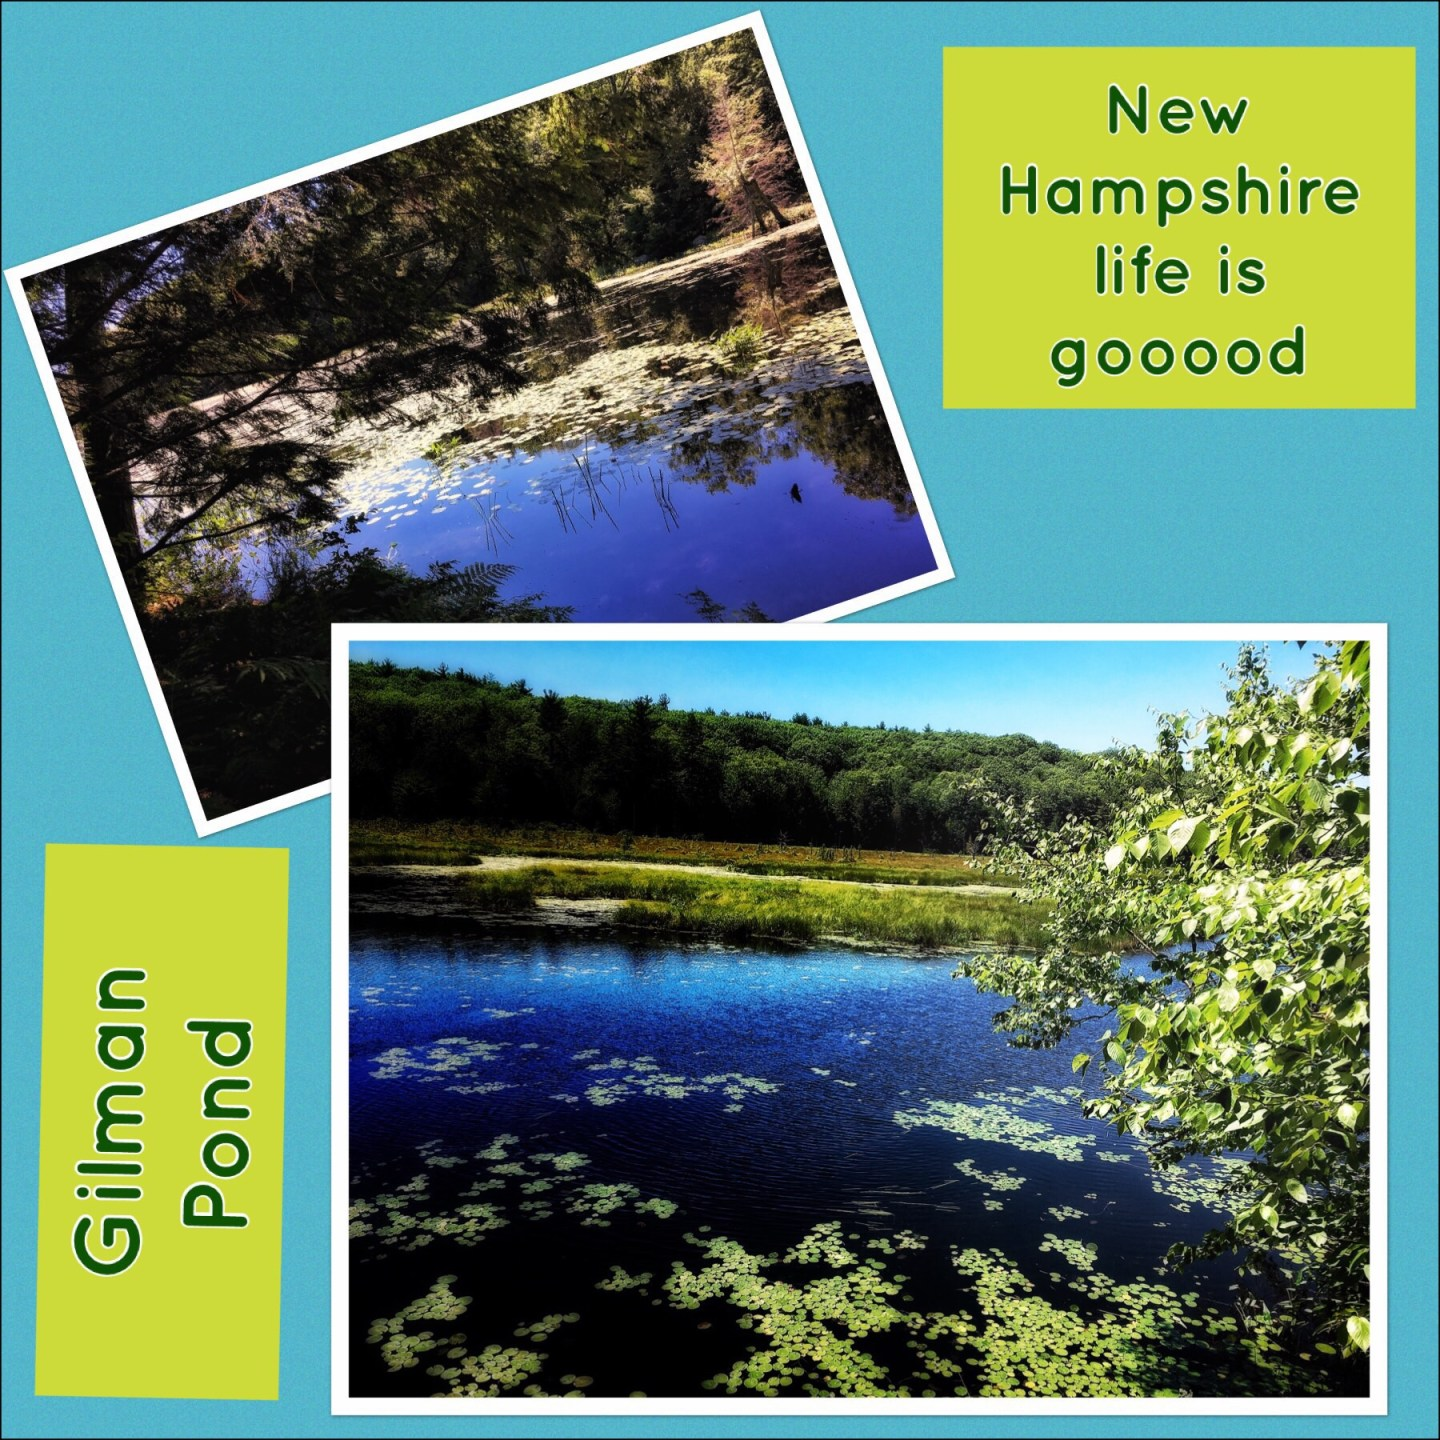 Gilman Pond, Alton, Lake Winnipesaukee tour